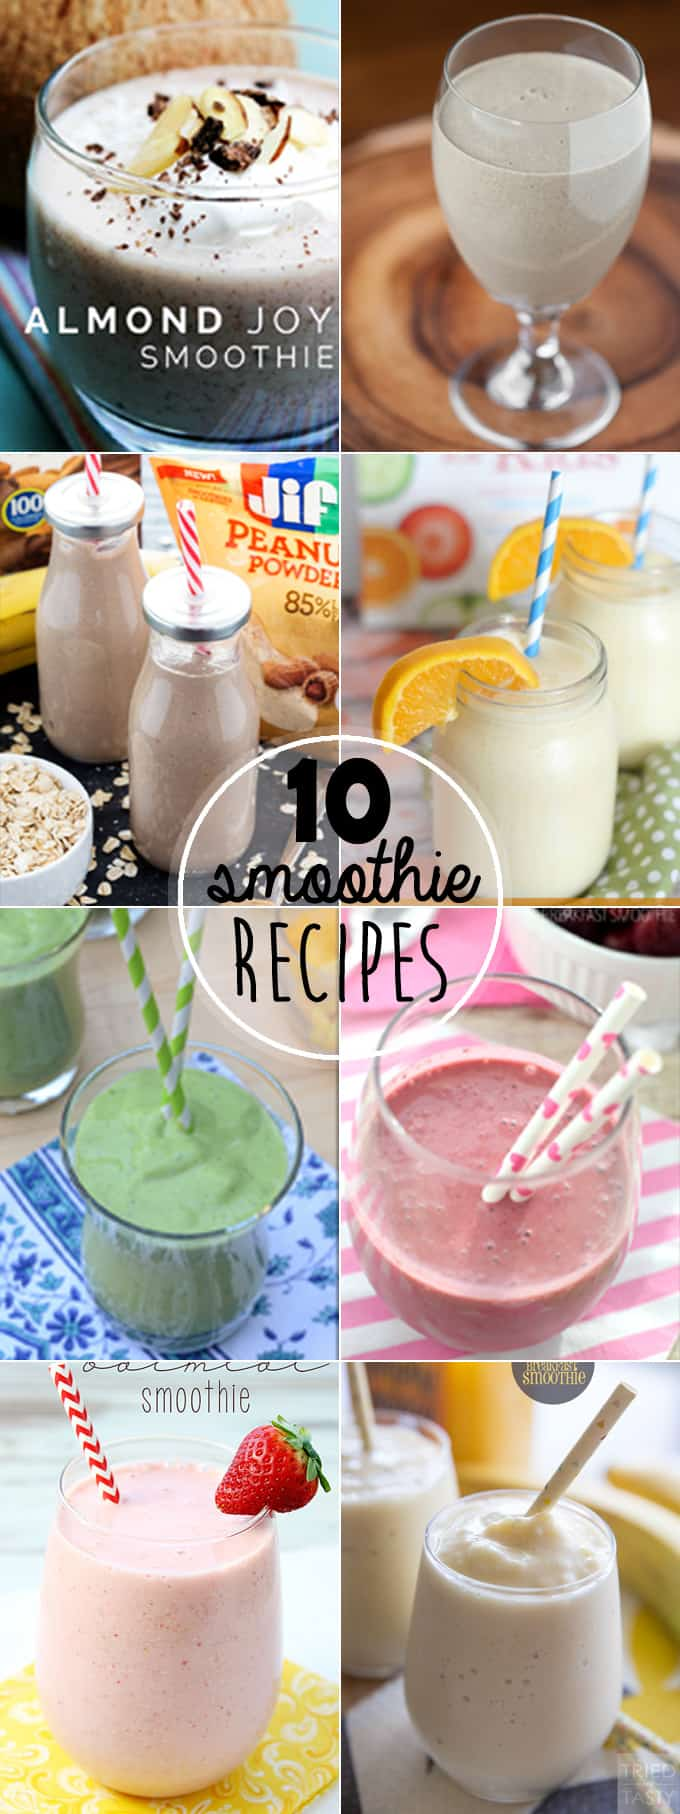 10 Mouth Watering Smoothie Recipes